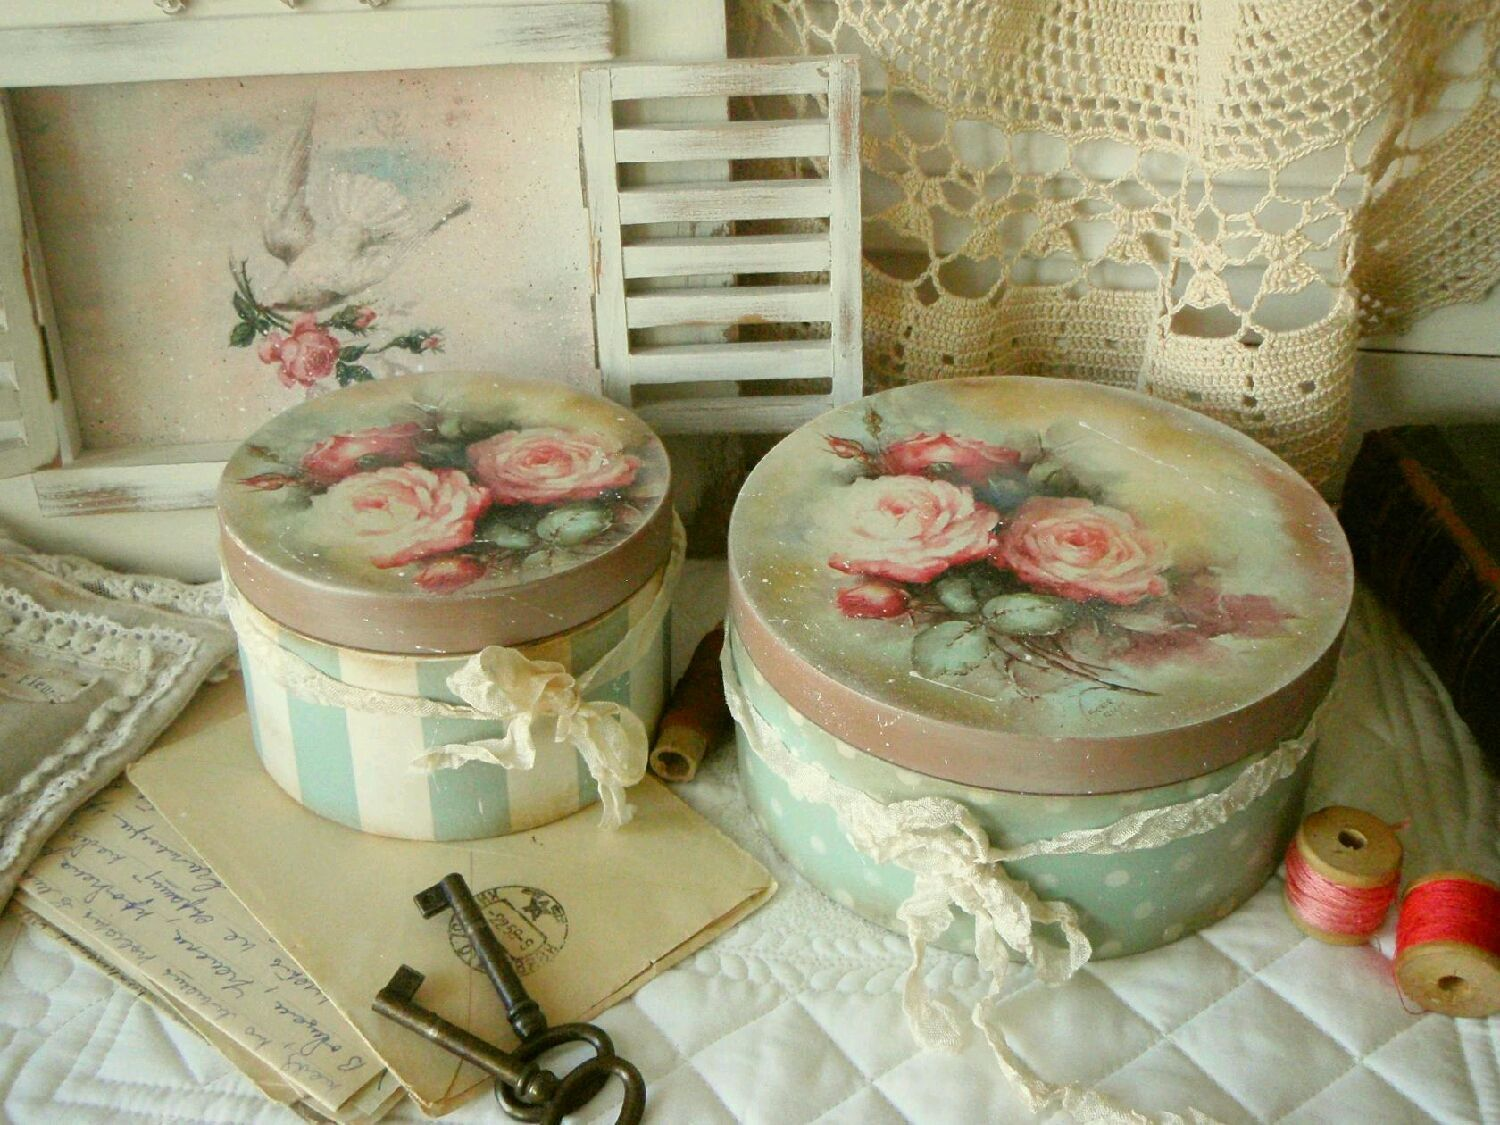 decoupage using wallpaper paste; Christmas sweet tins; and old birthday cards